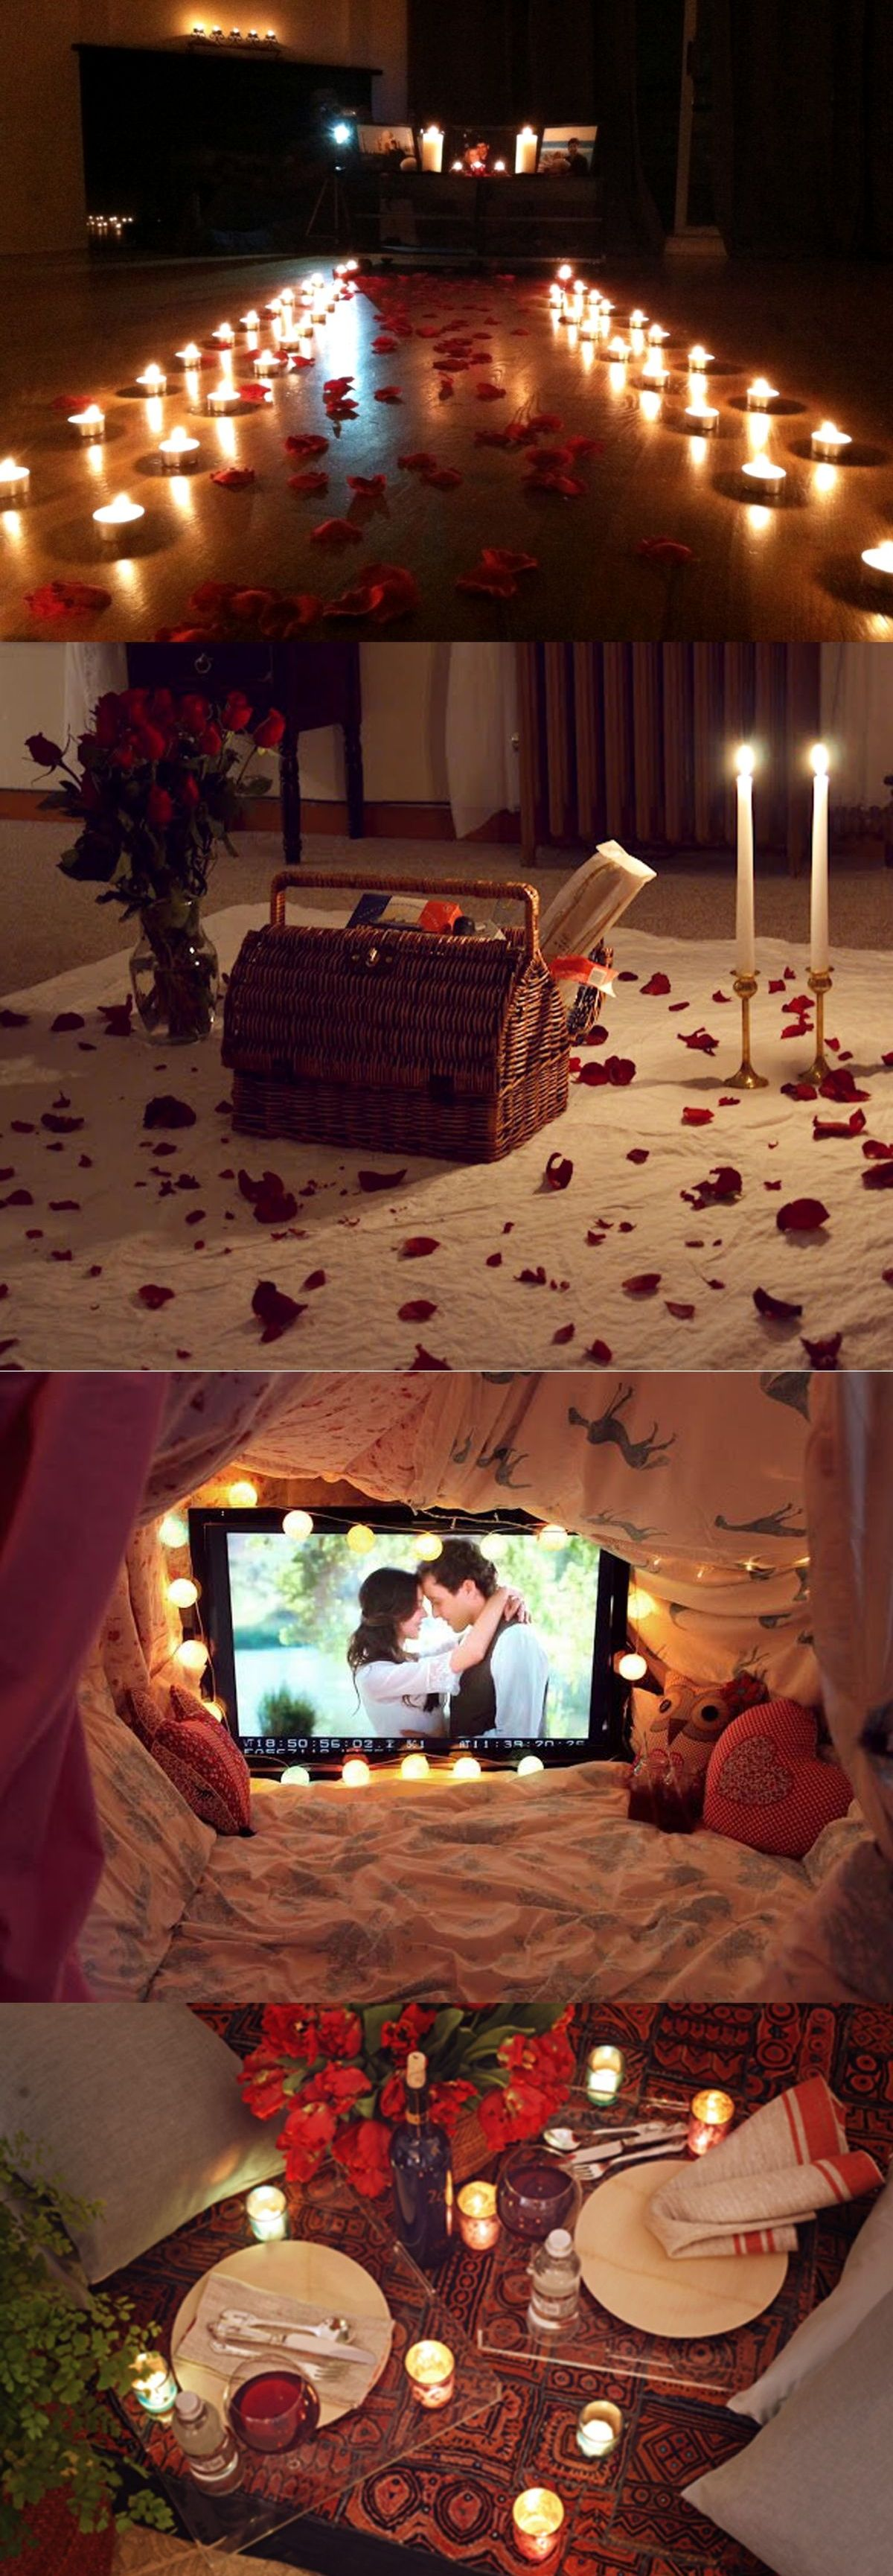 Romantic Bedroom At Night: Ingredients For The Perfect Romantic Indoor Picnic: Roses